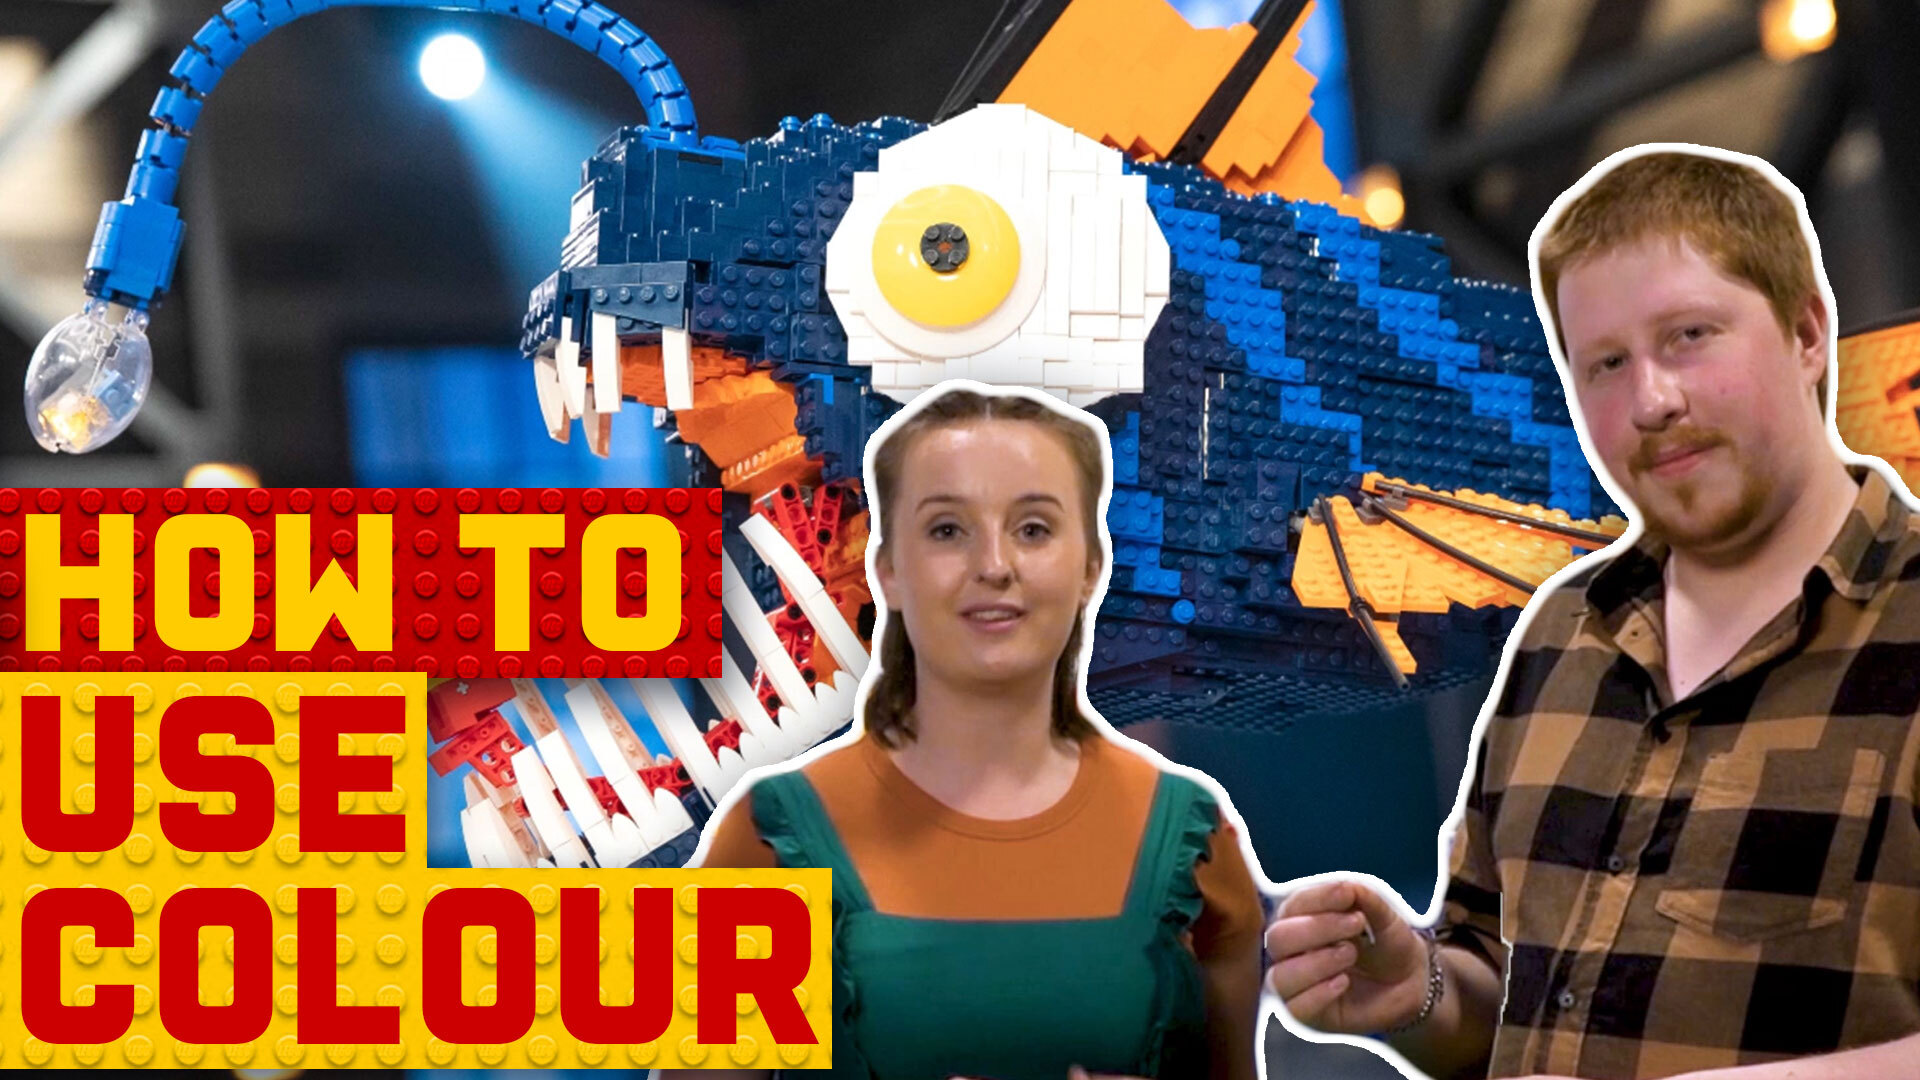 Tim and Dannii's tips for using colour in your LEGO build